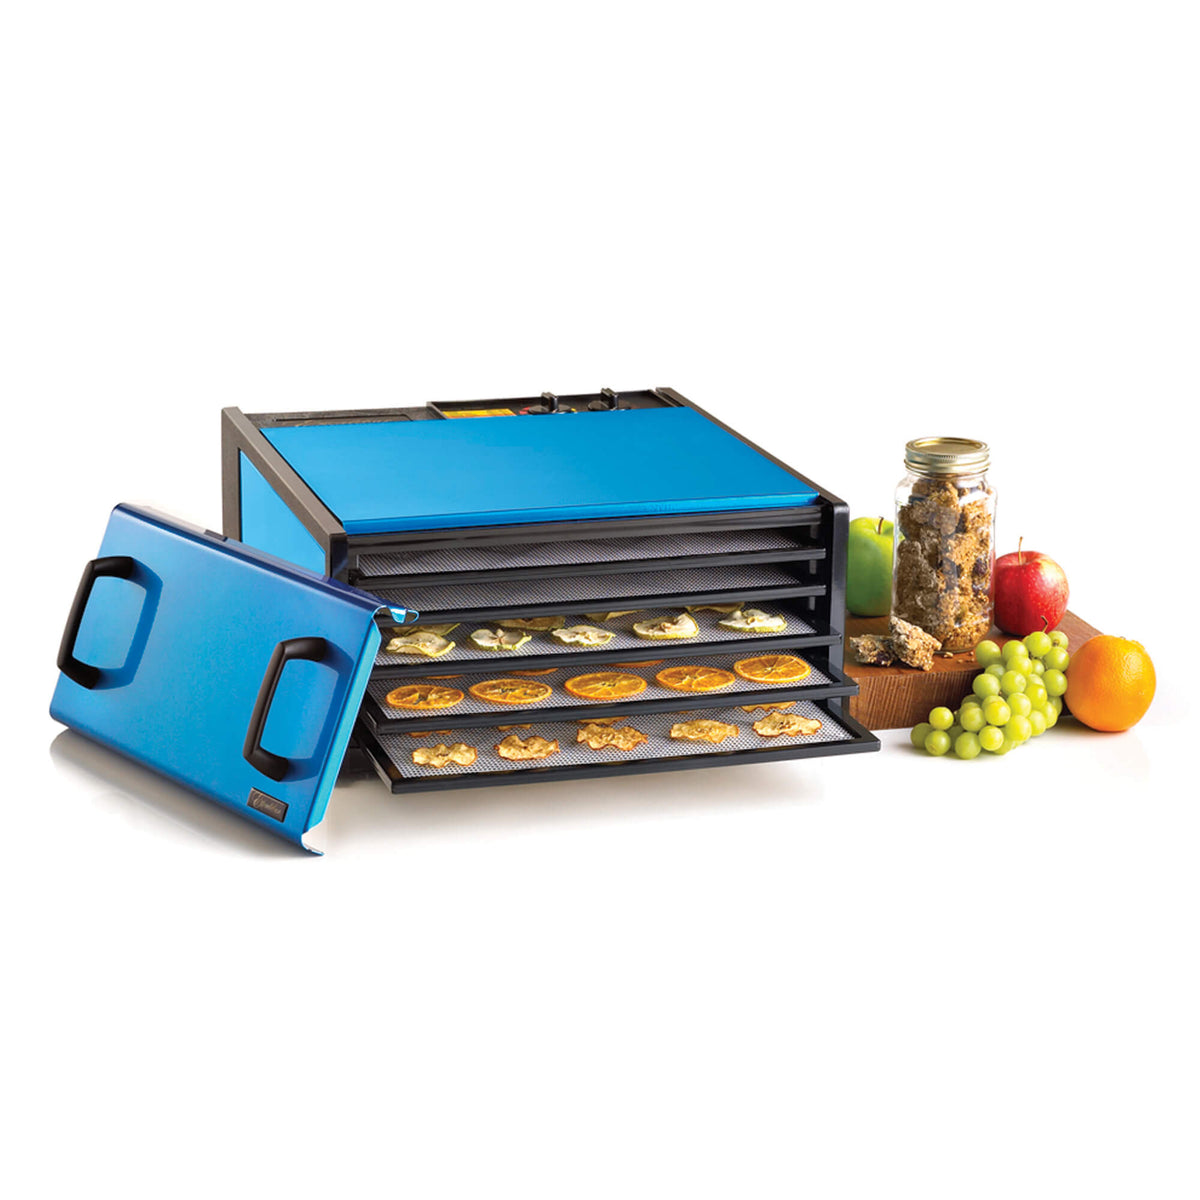 Excalibur D502RB Radiant Blueberry 5 tray stainless steel dehydrator with door propped to the side and food on the trays.